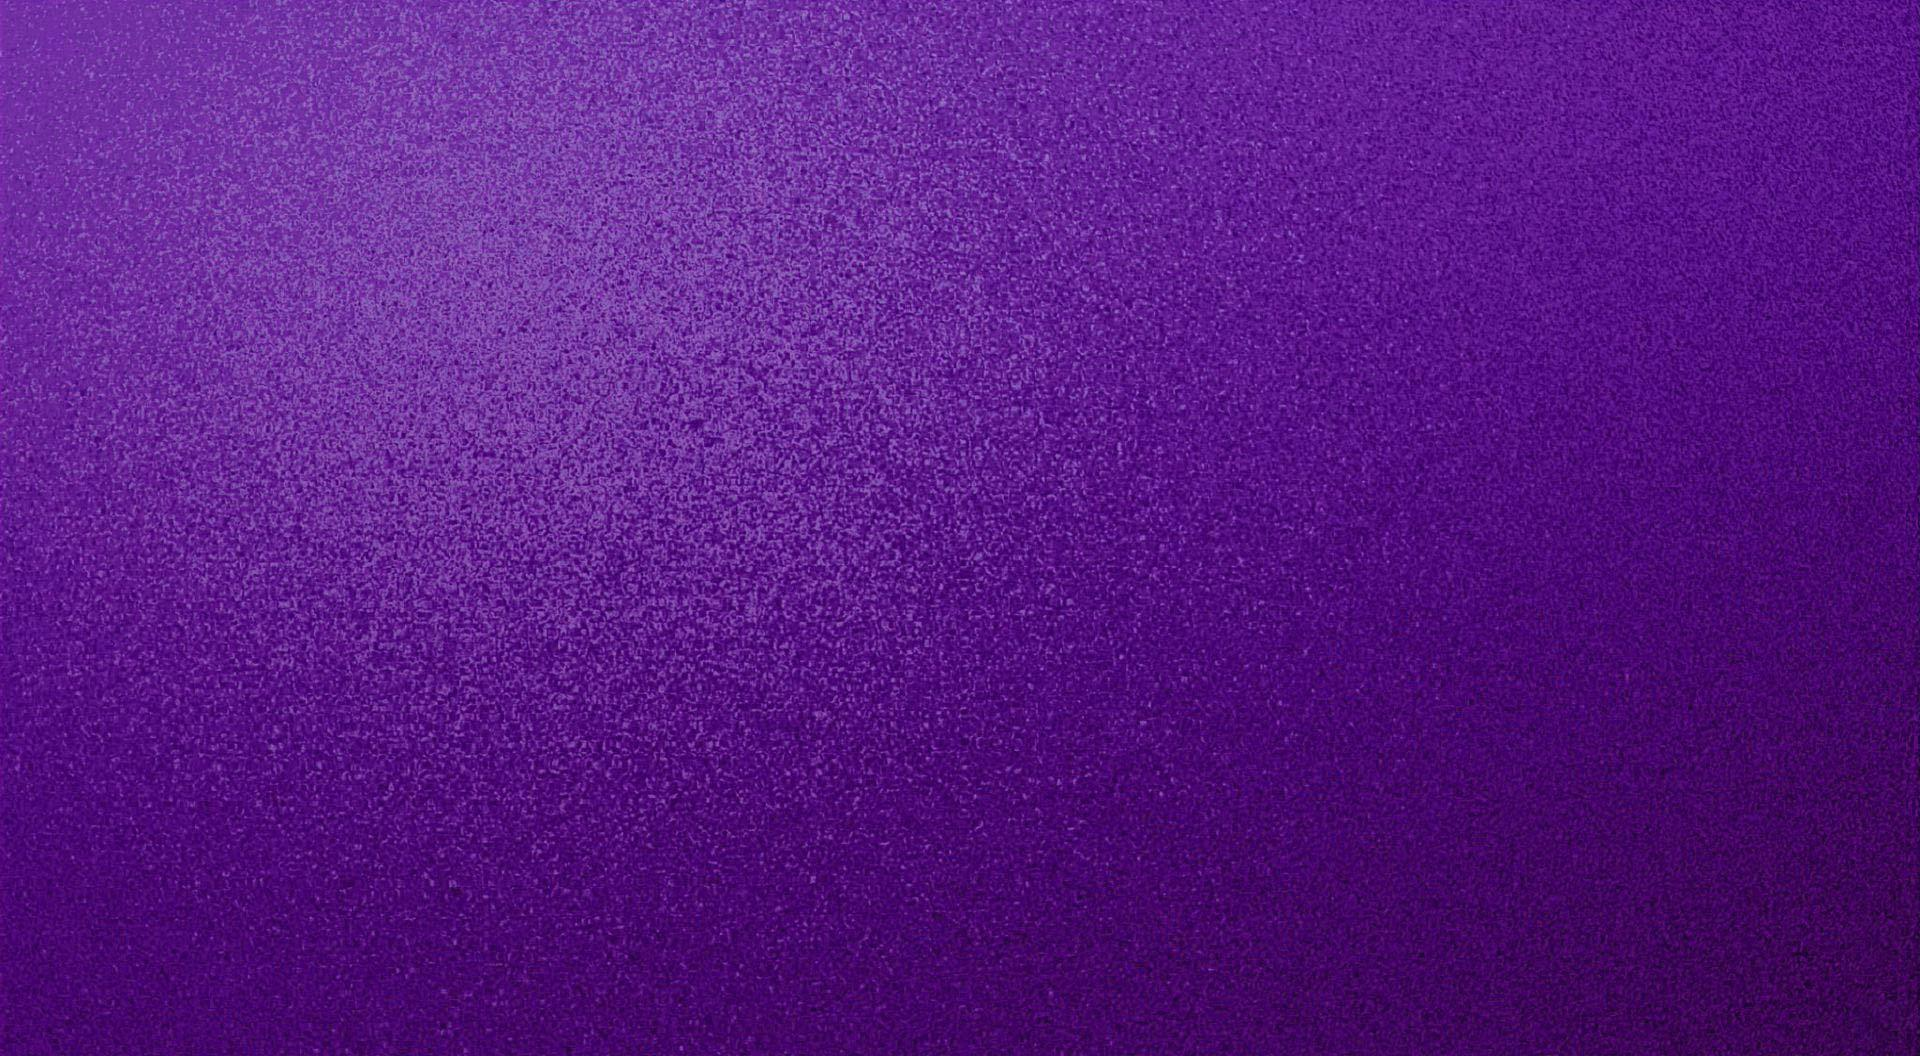 Purple backgrounds hd wallpaper cave for Purple wallpaper for walls